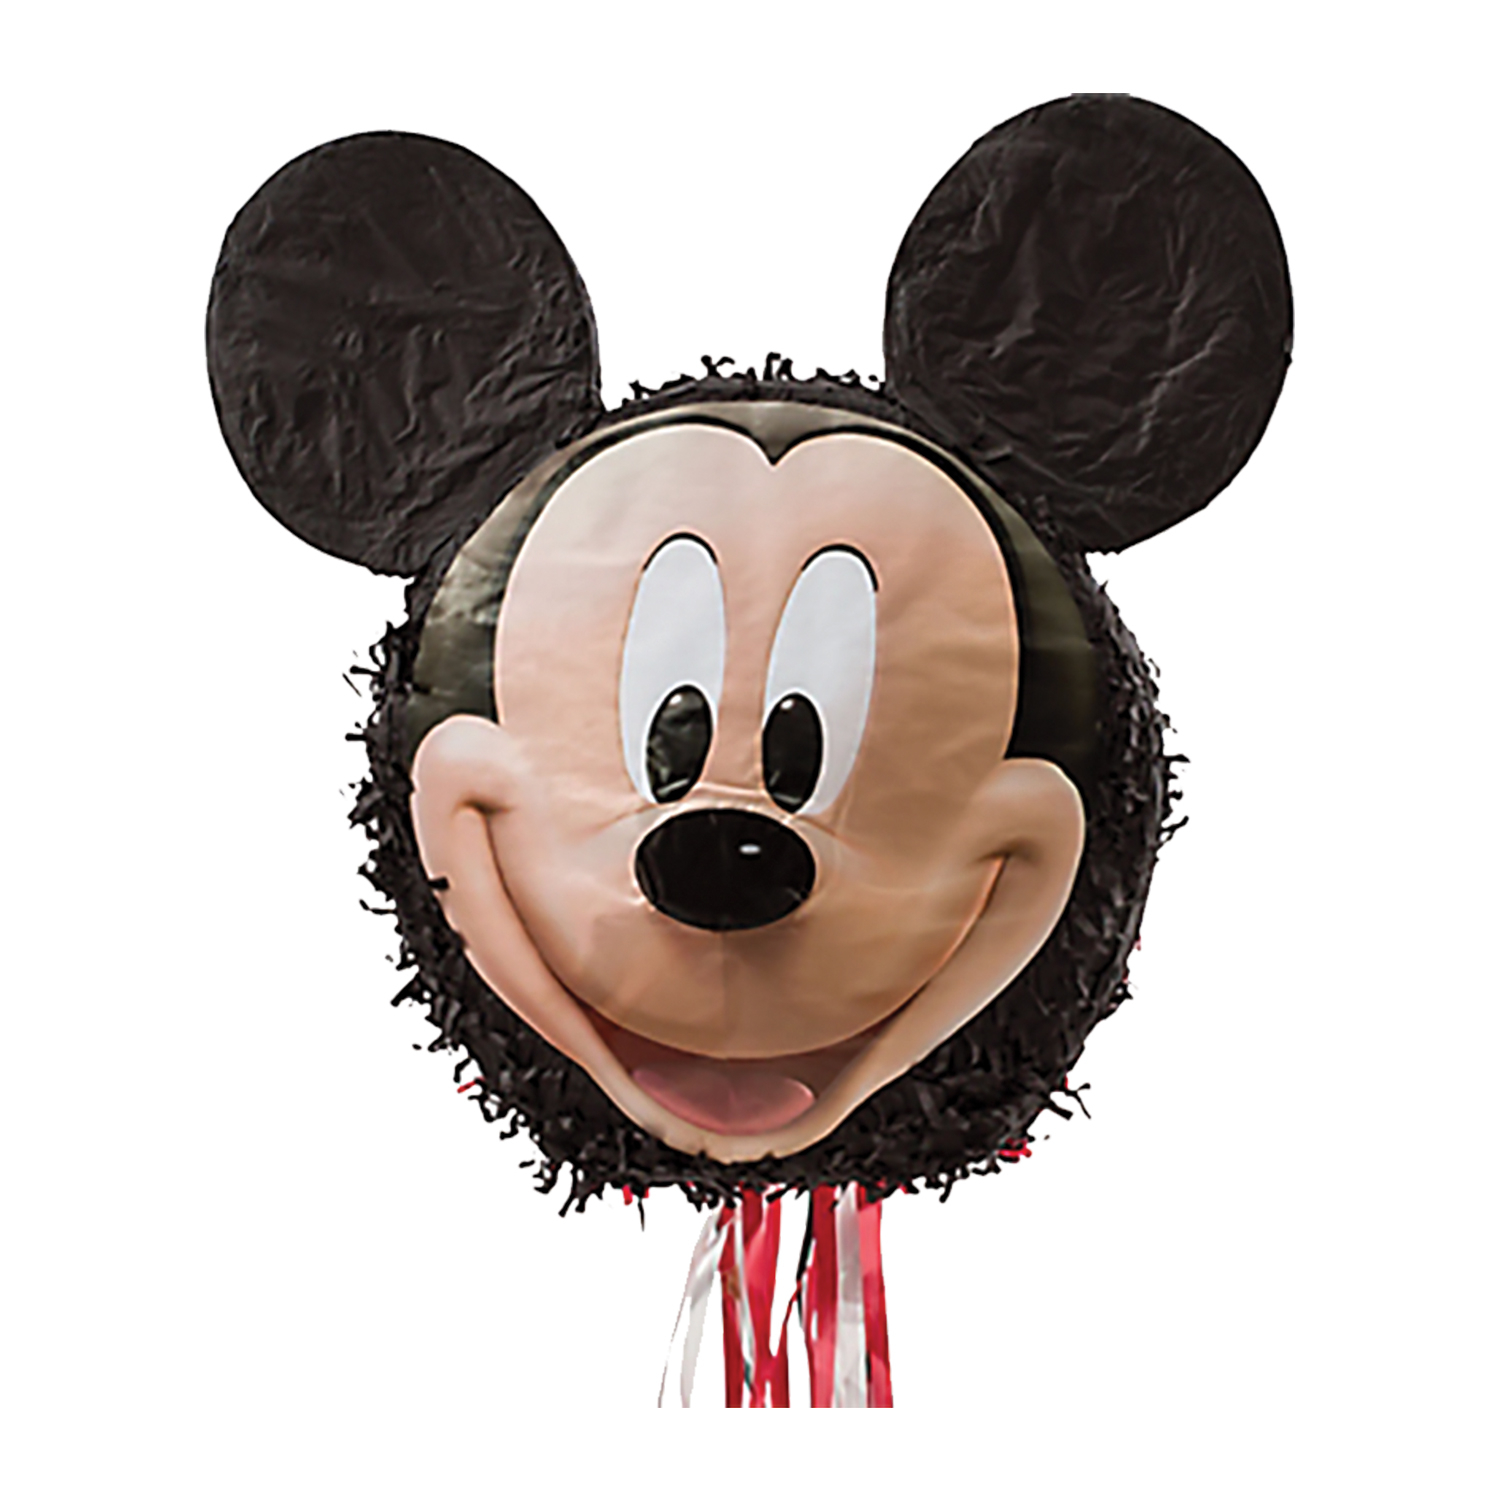 """New Mickey Mouse Giant Ears Balloons 4 Sided Print 22/""""//55.8cm //4"""